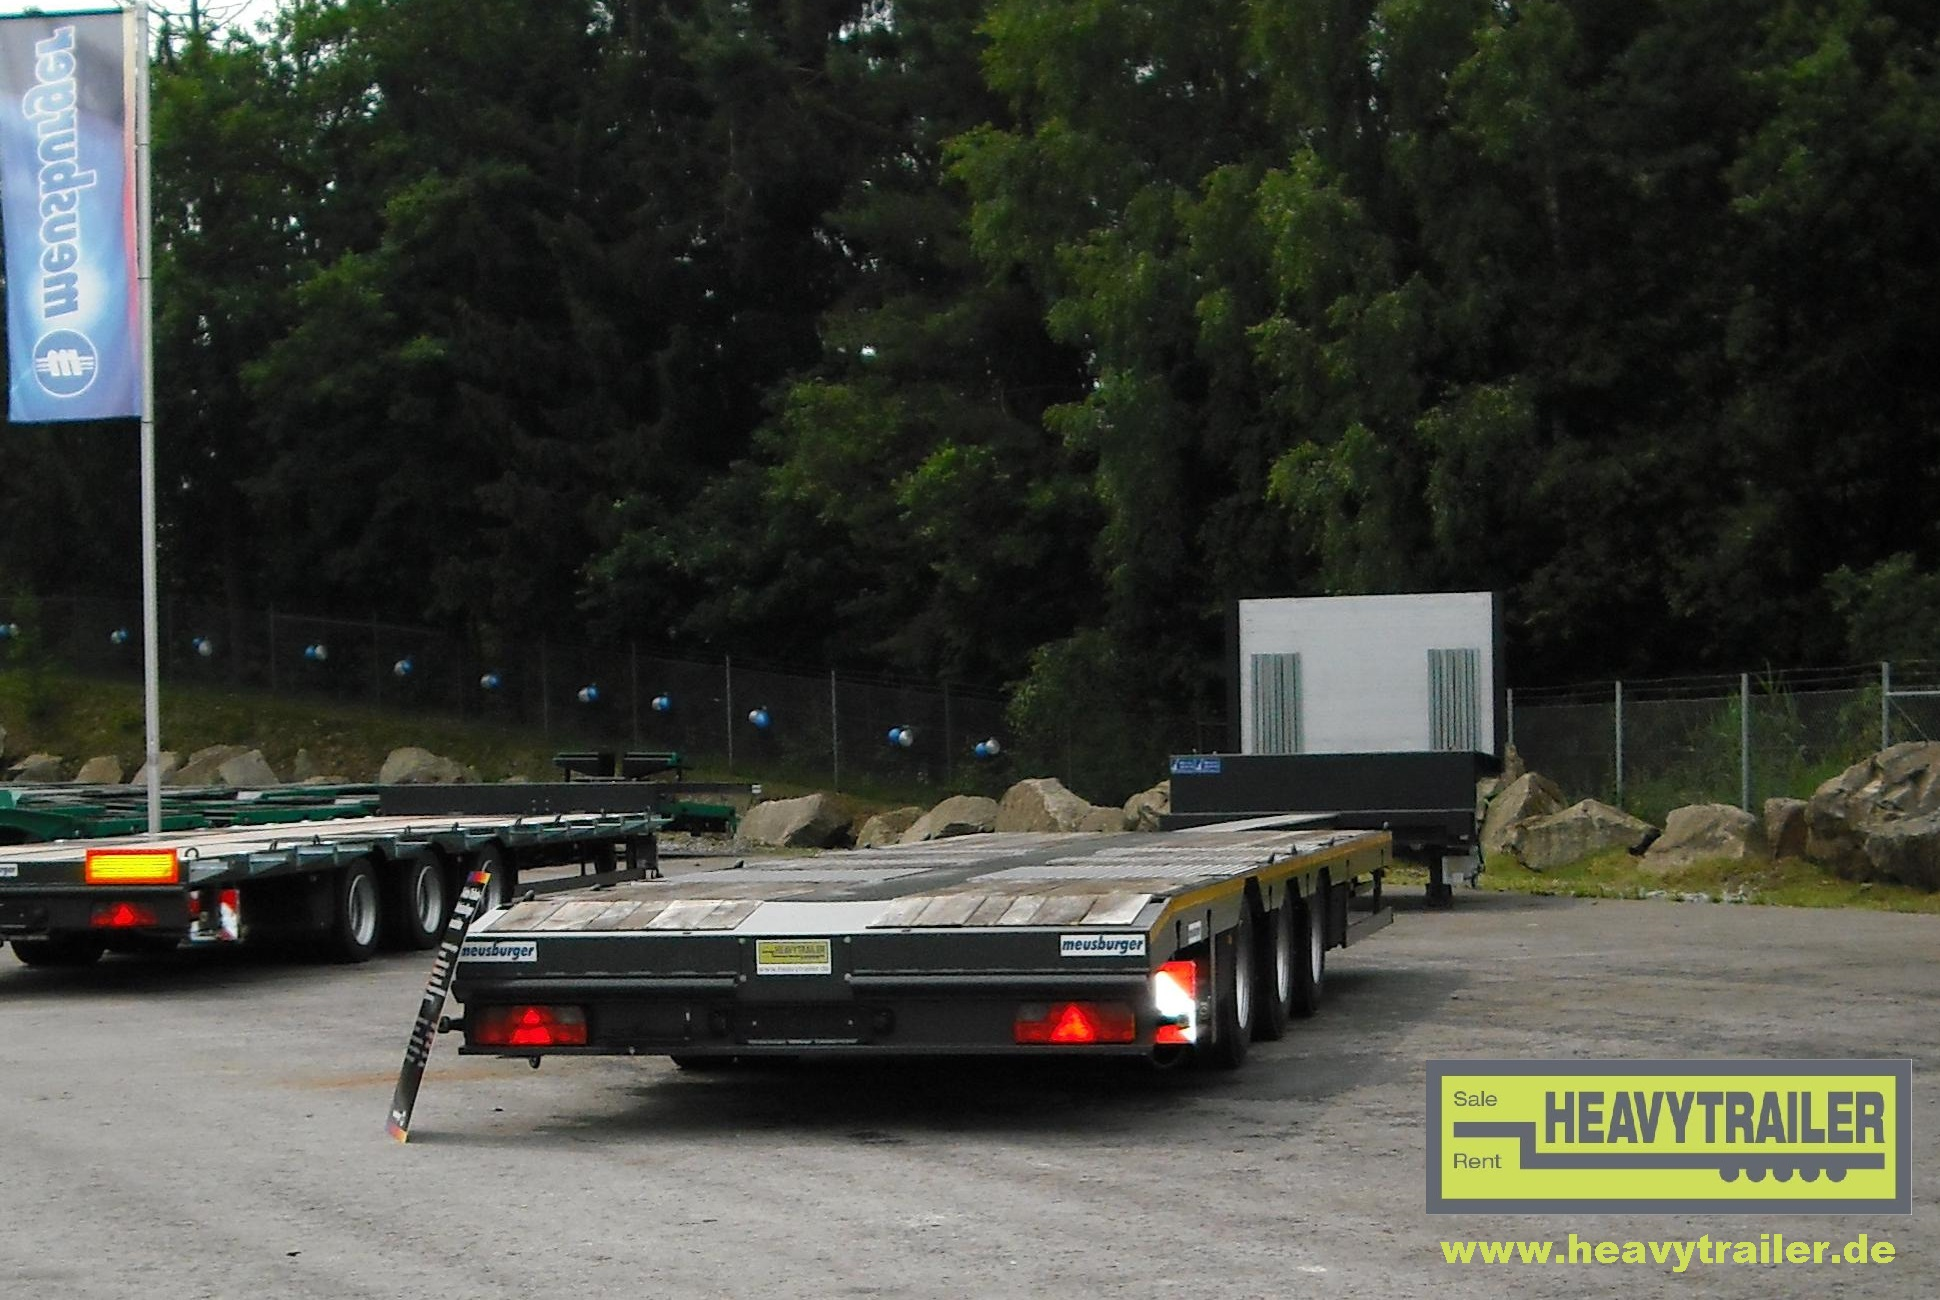 Meusburger 3-axle-semi-trailer